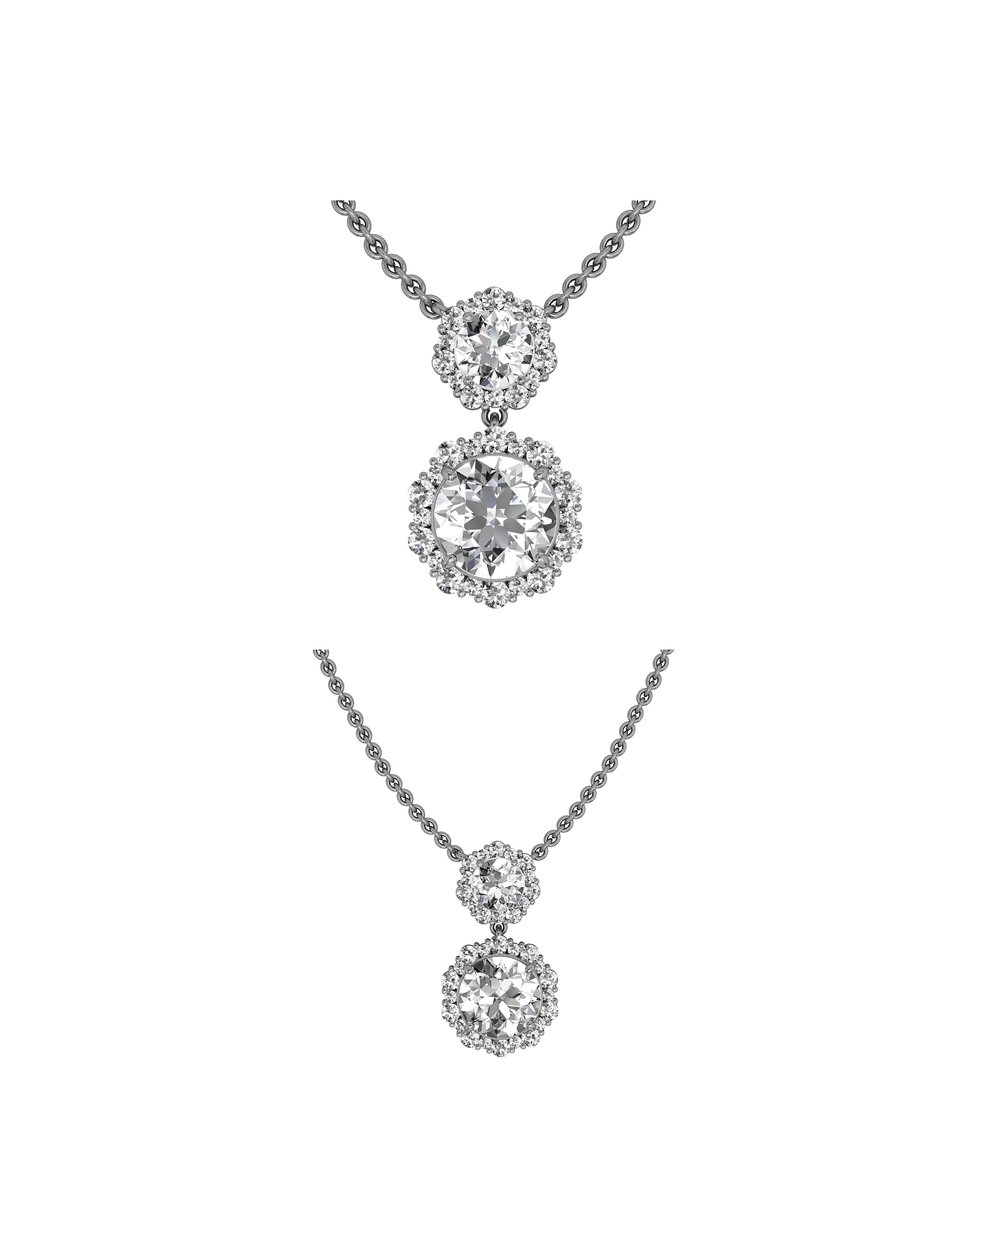 designer diamond bridal jewelry-41194.jpg